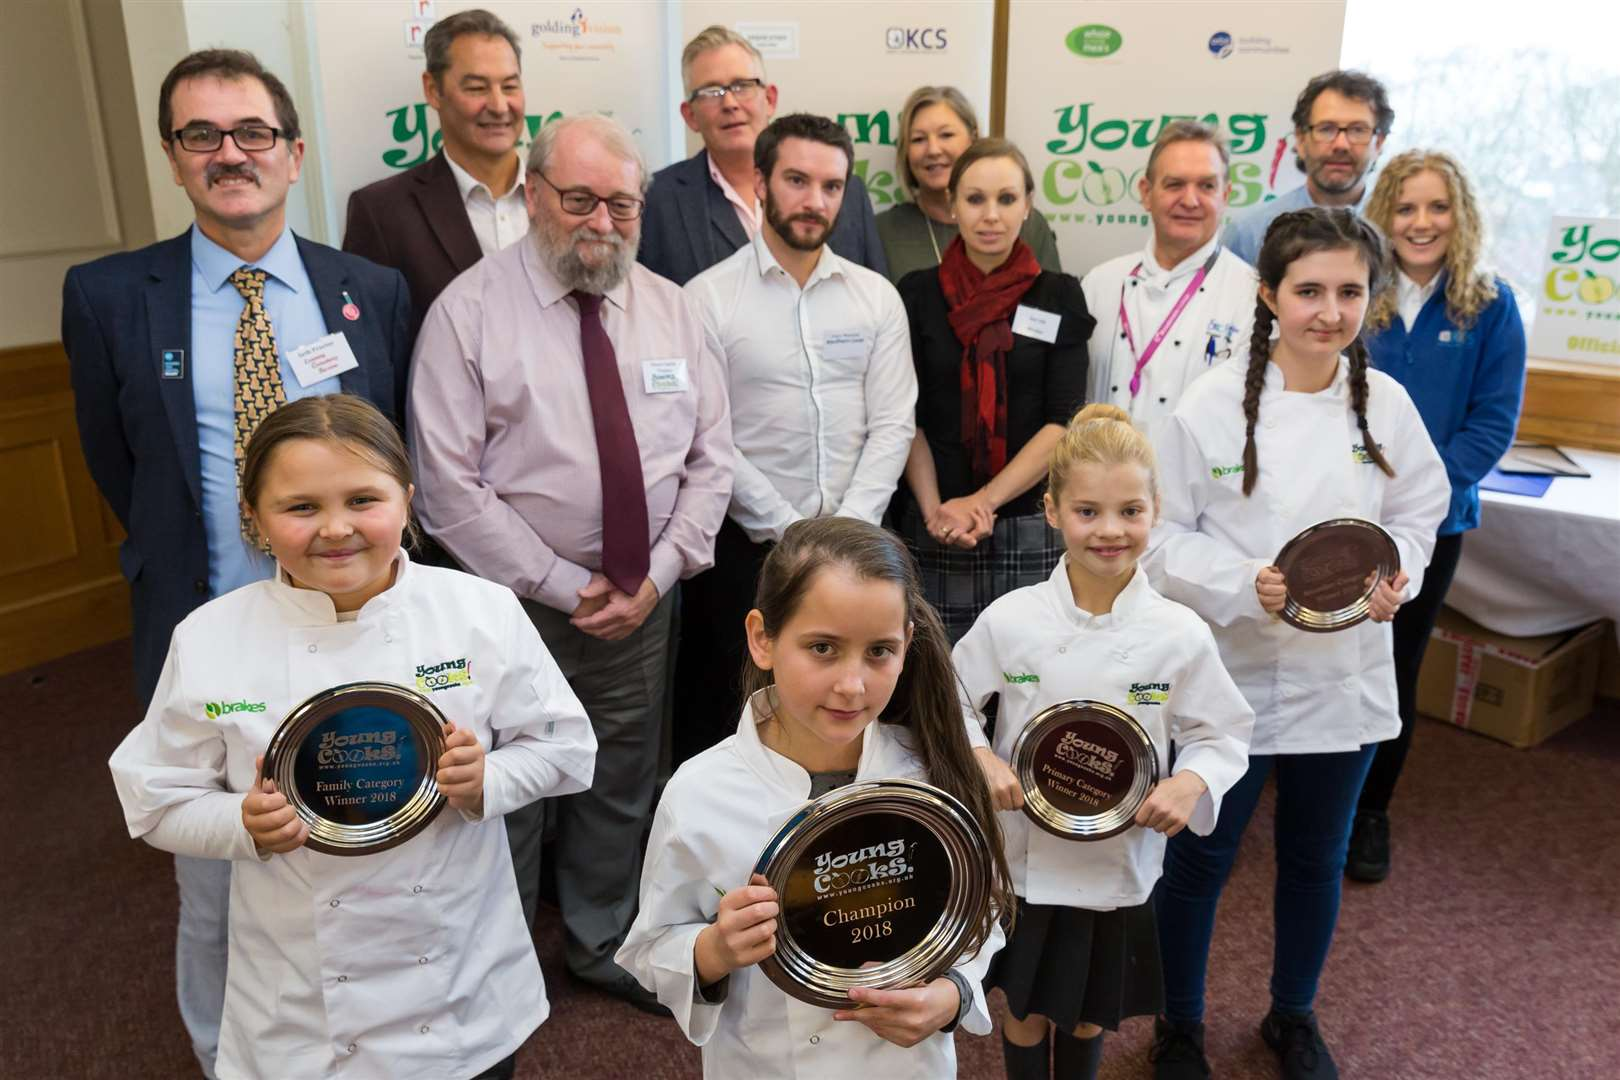 Front row (from left) Young Cooks 2018 winners Brooke Keen, Boglar Bote-Godri, Amelia Phillips, and Amelia Page with judges and supporters of the contest.